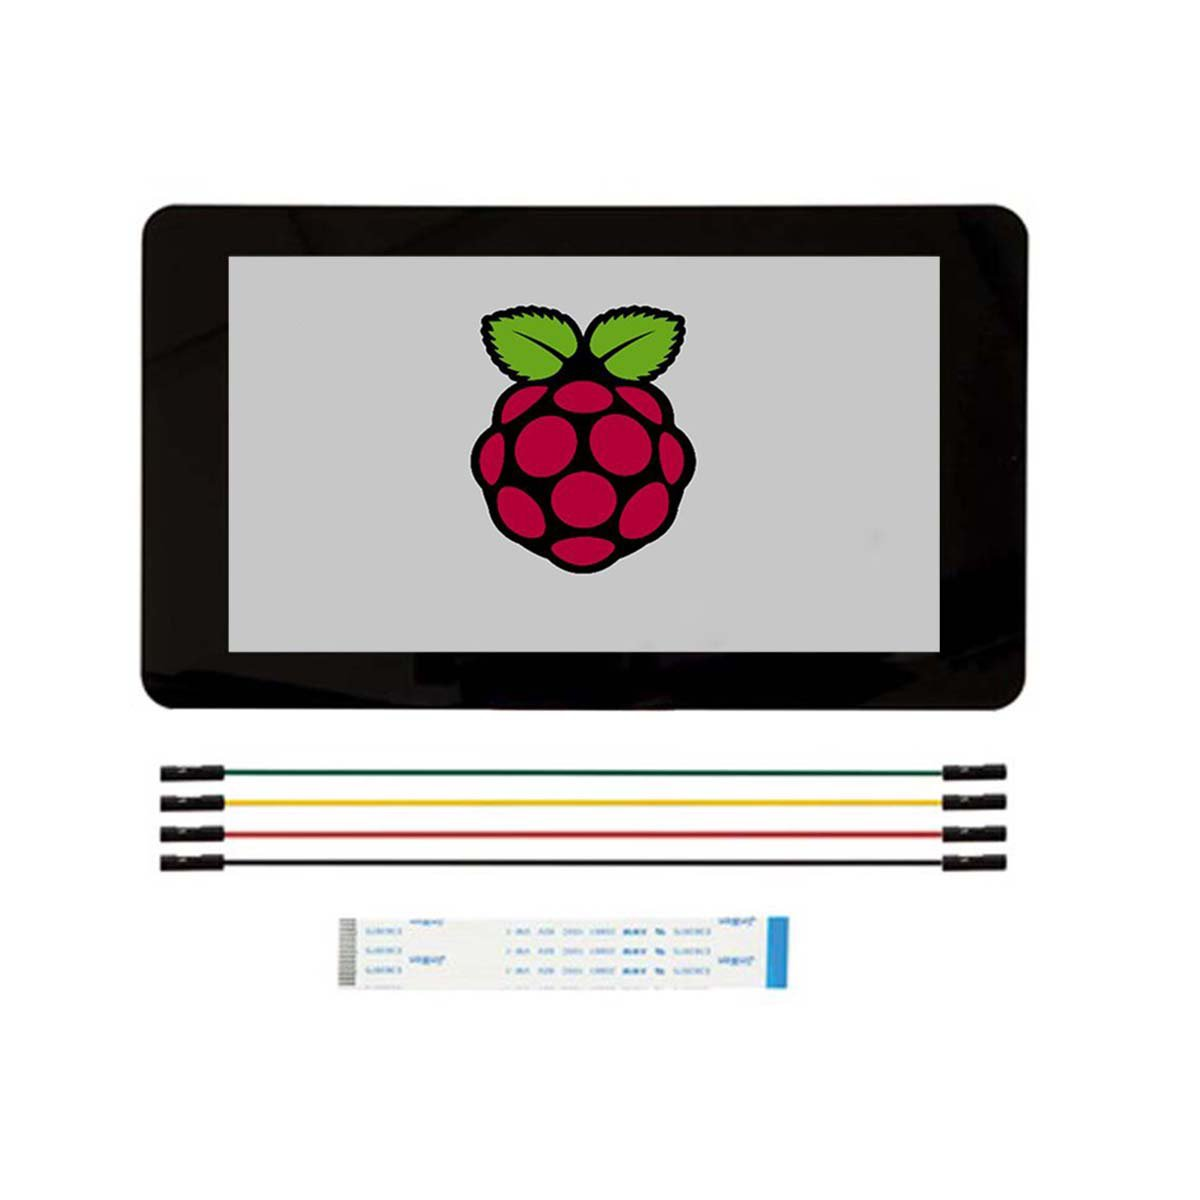 7'' 800 x 480 Touch Screen Display for Raspberry Pi 2B / B+/ A+ by OLSUS